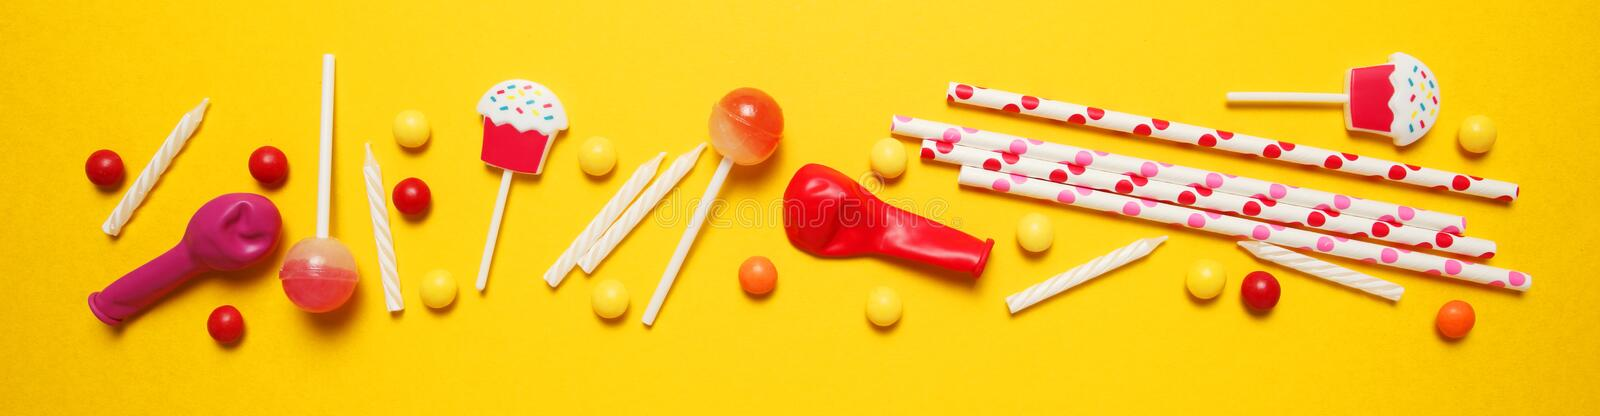 Festive decor for children`s birthday. Sweet multicolored candies, balloon, straws.  stock photos